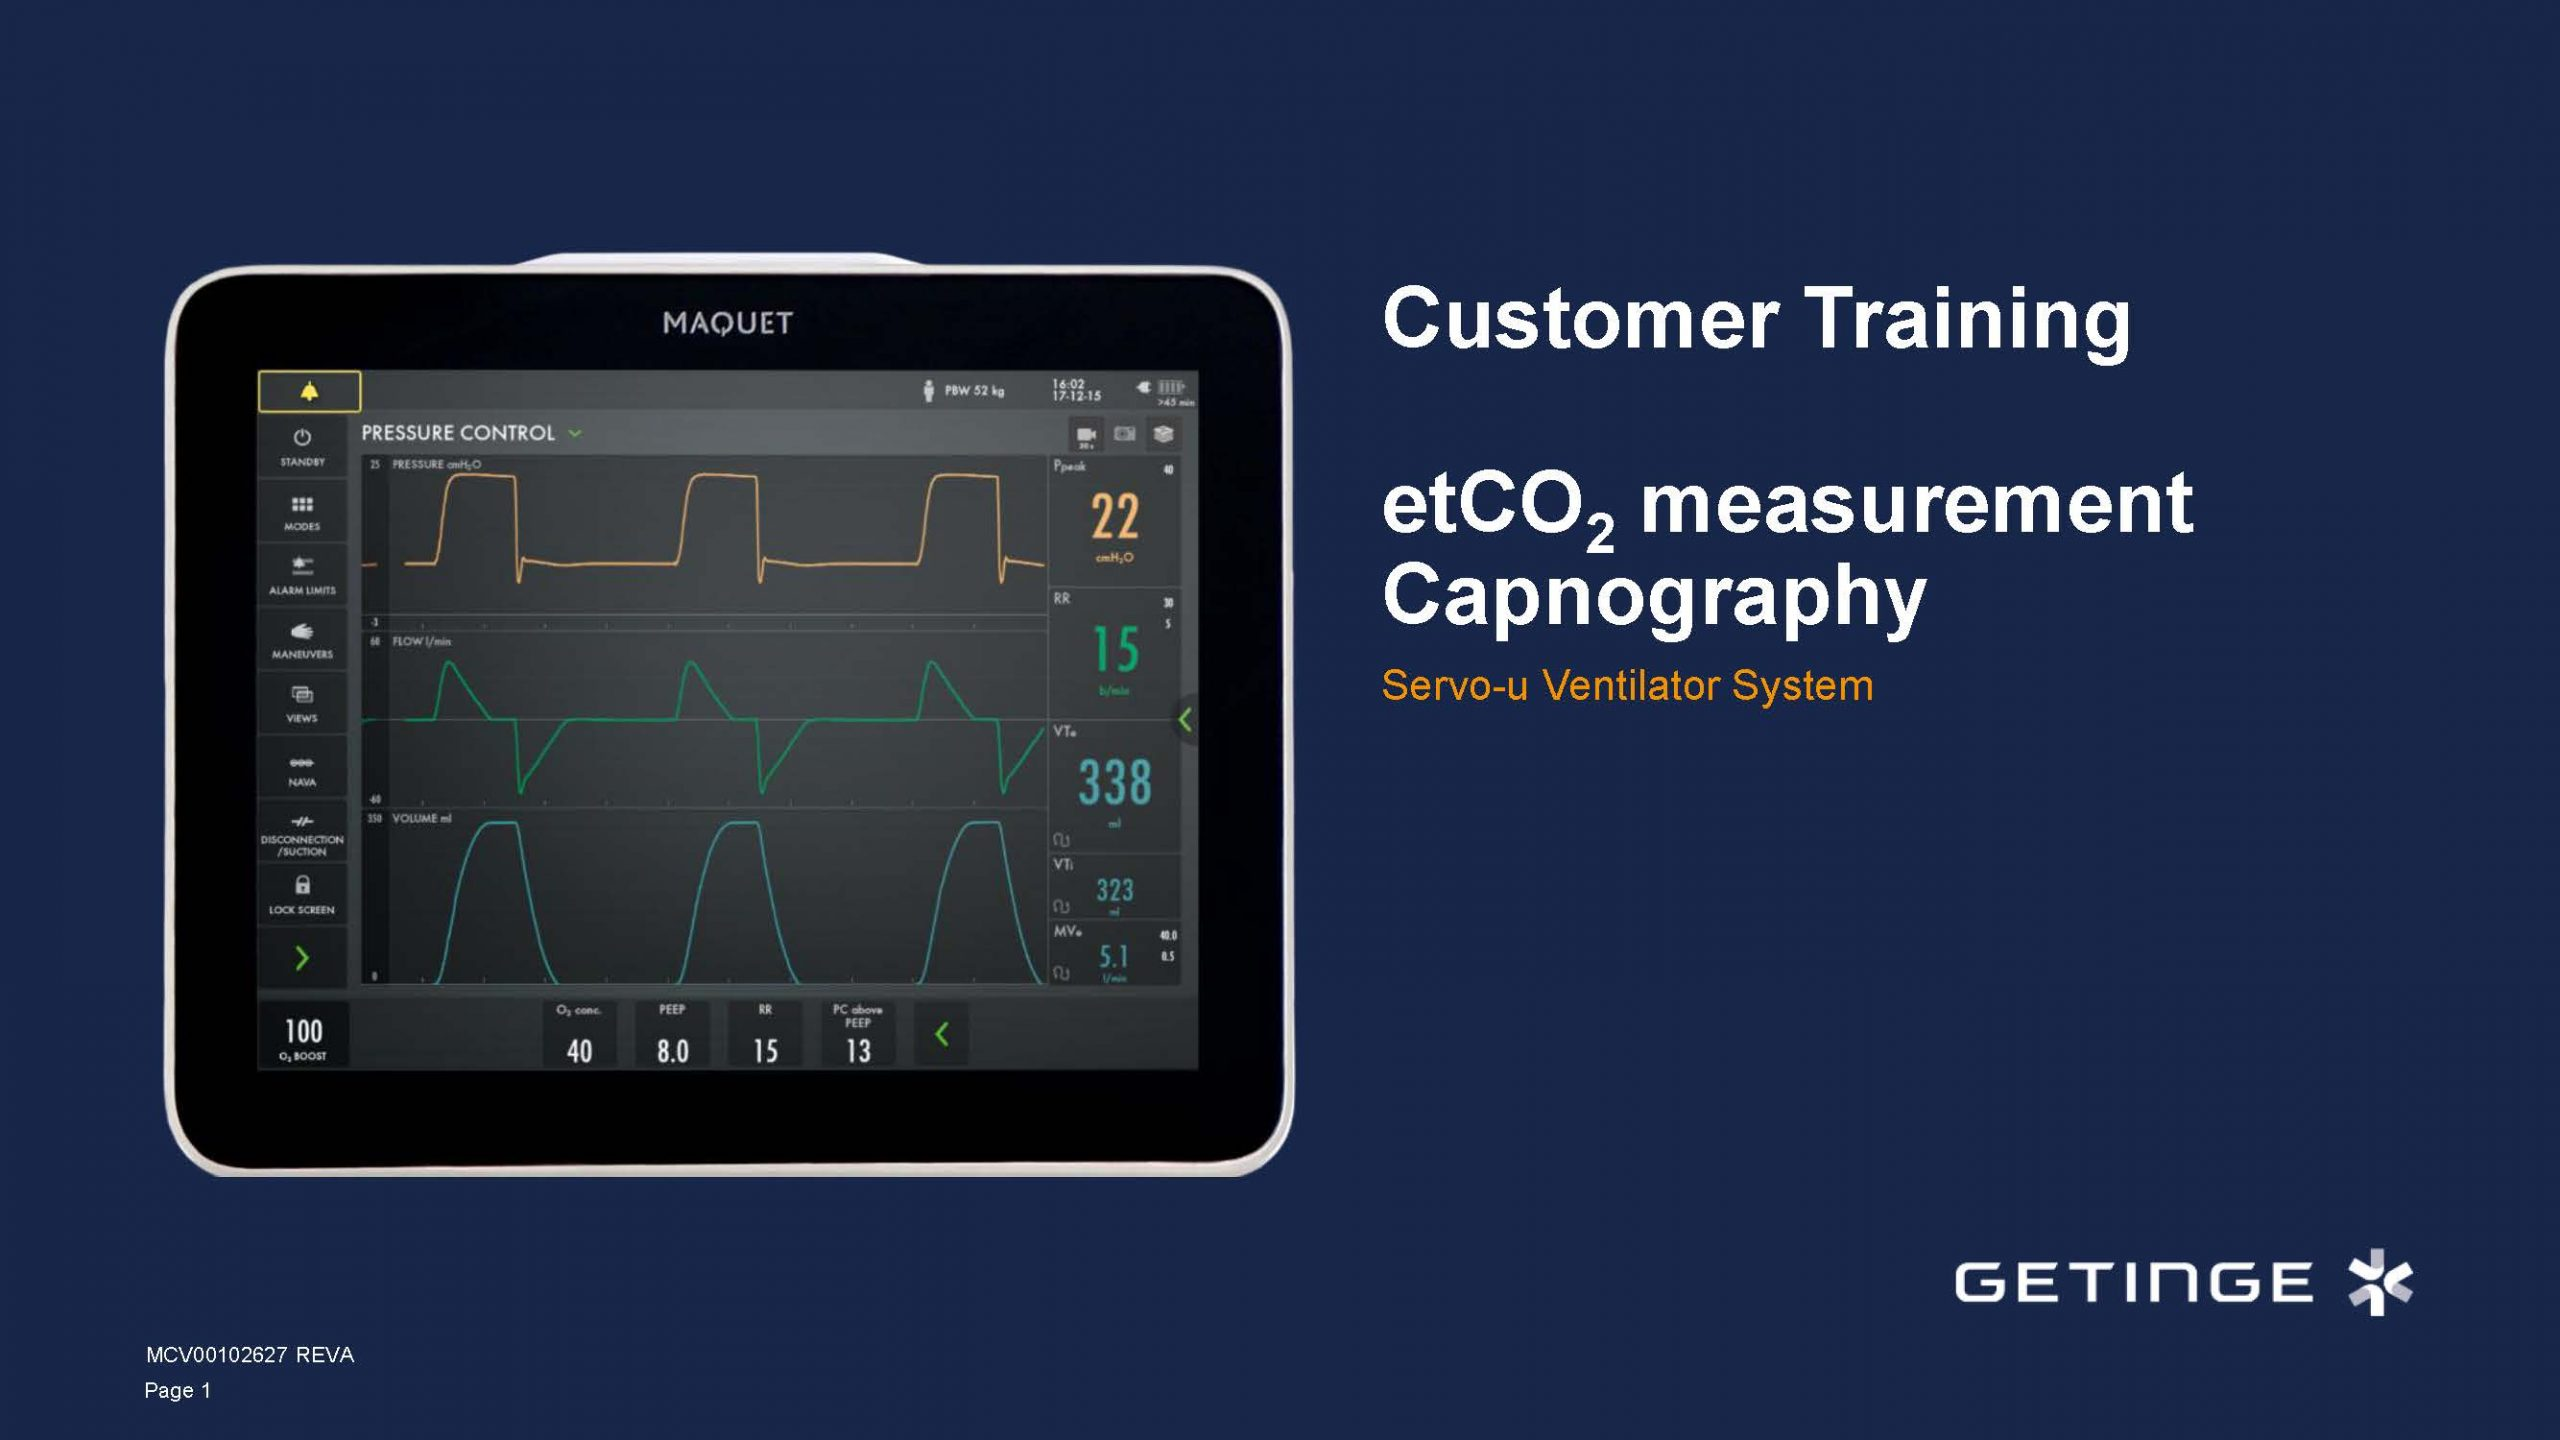 etCO2 Measurement Capnography Presentation